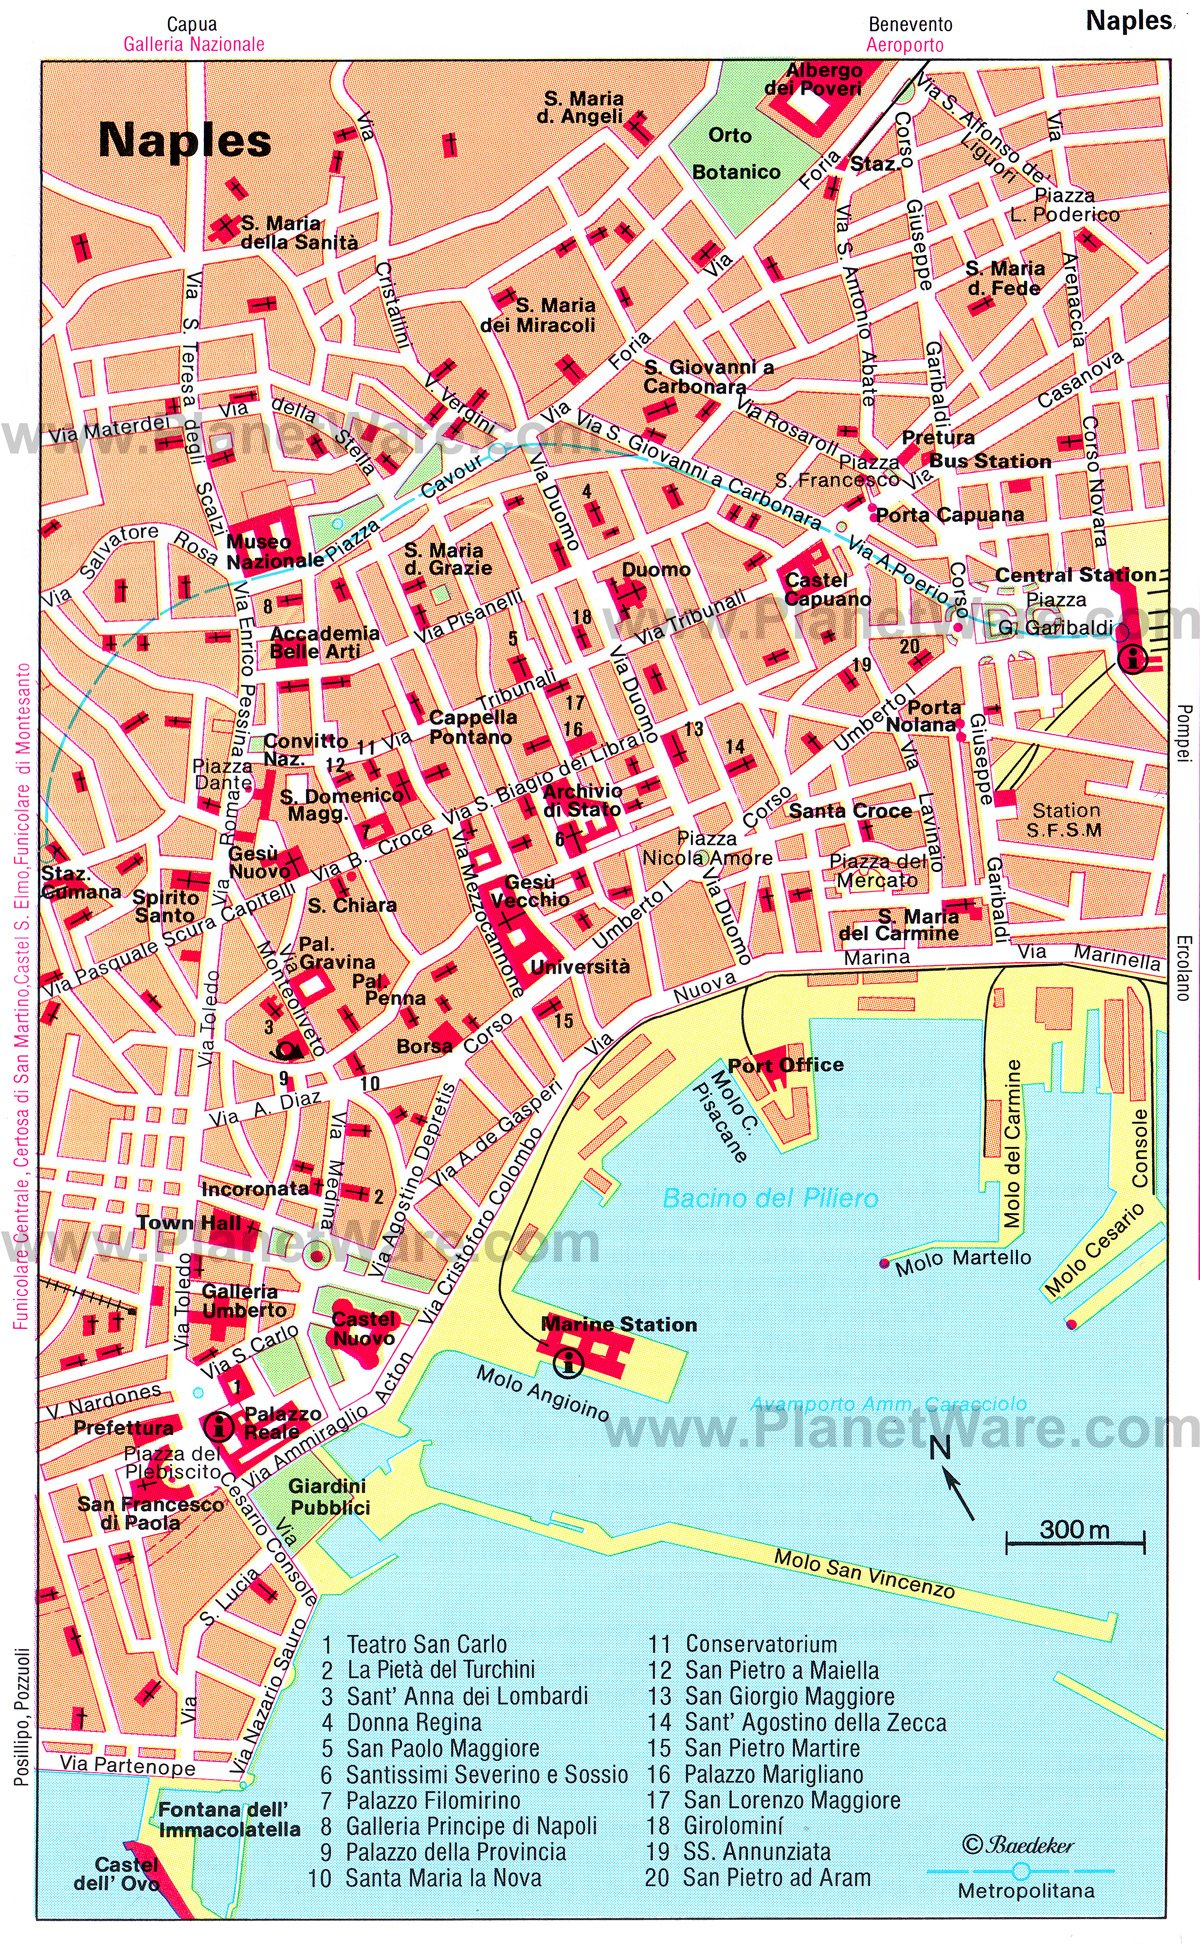 Naples Map - Tourist Attractions